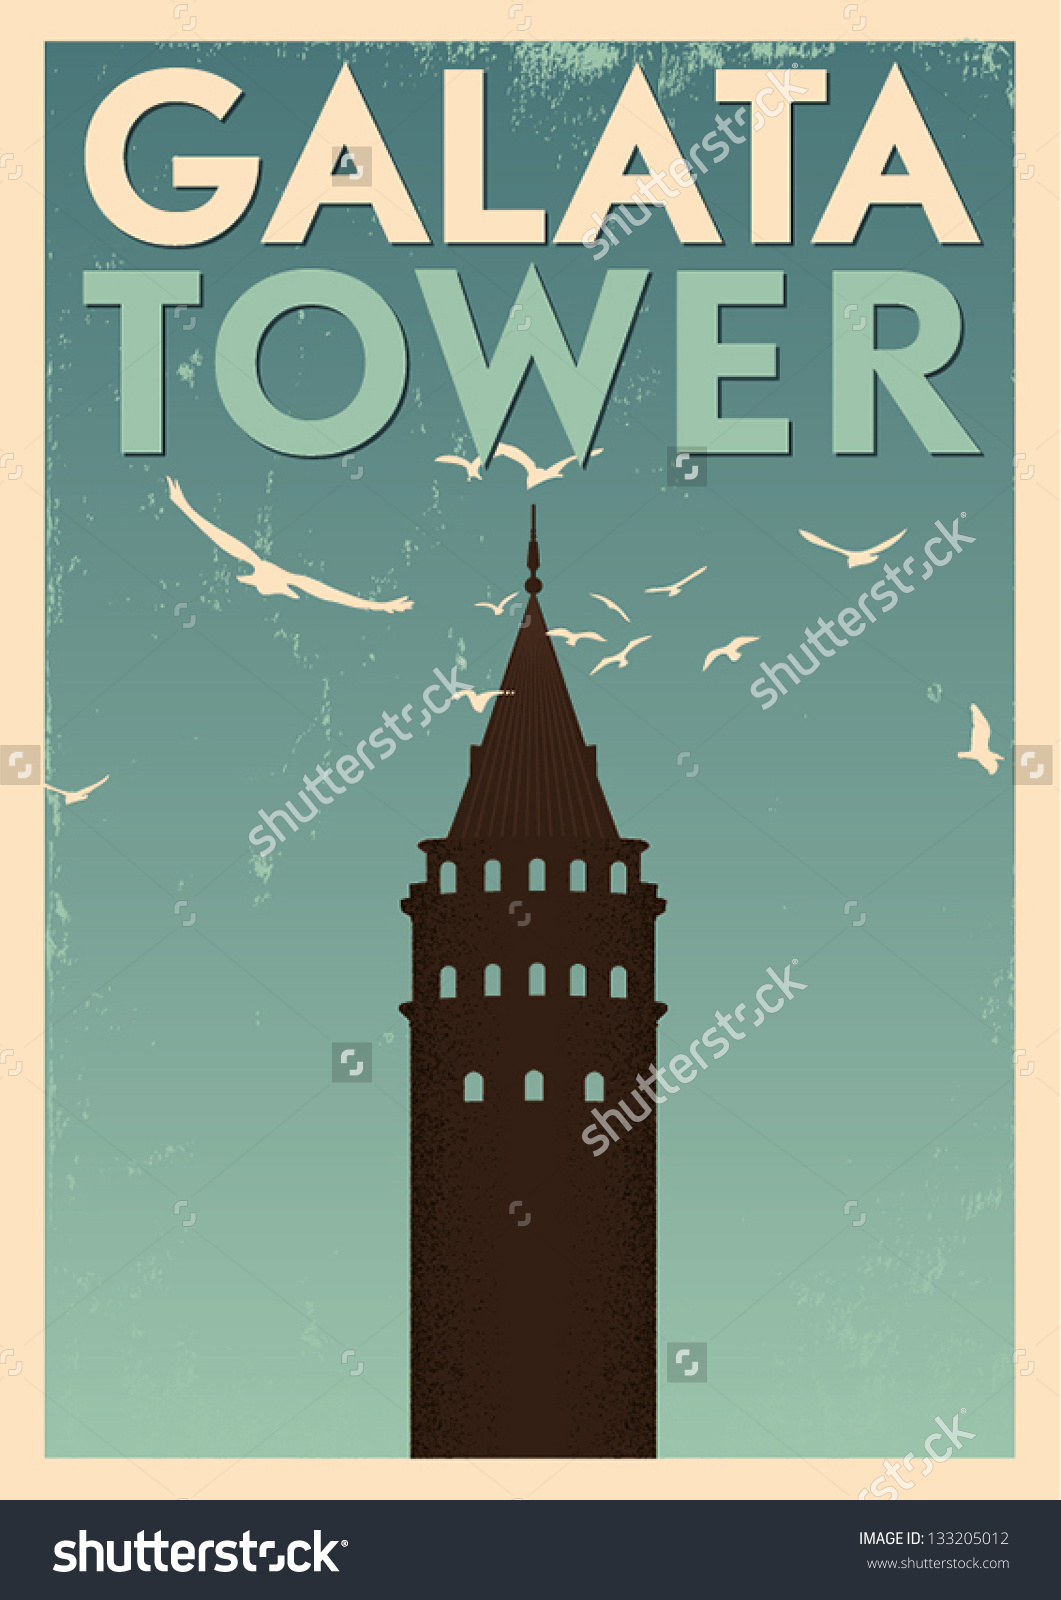 Galata Tower Vintage Poster Stock Vector 133205012.